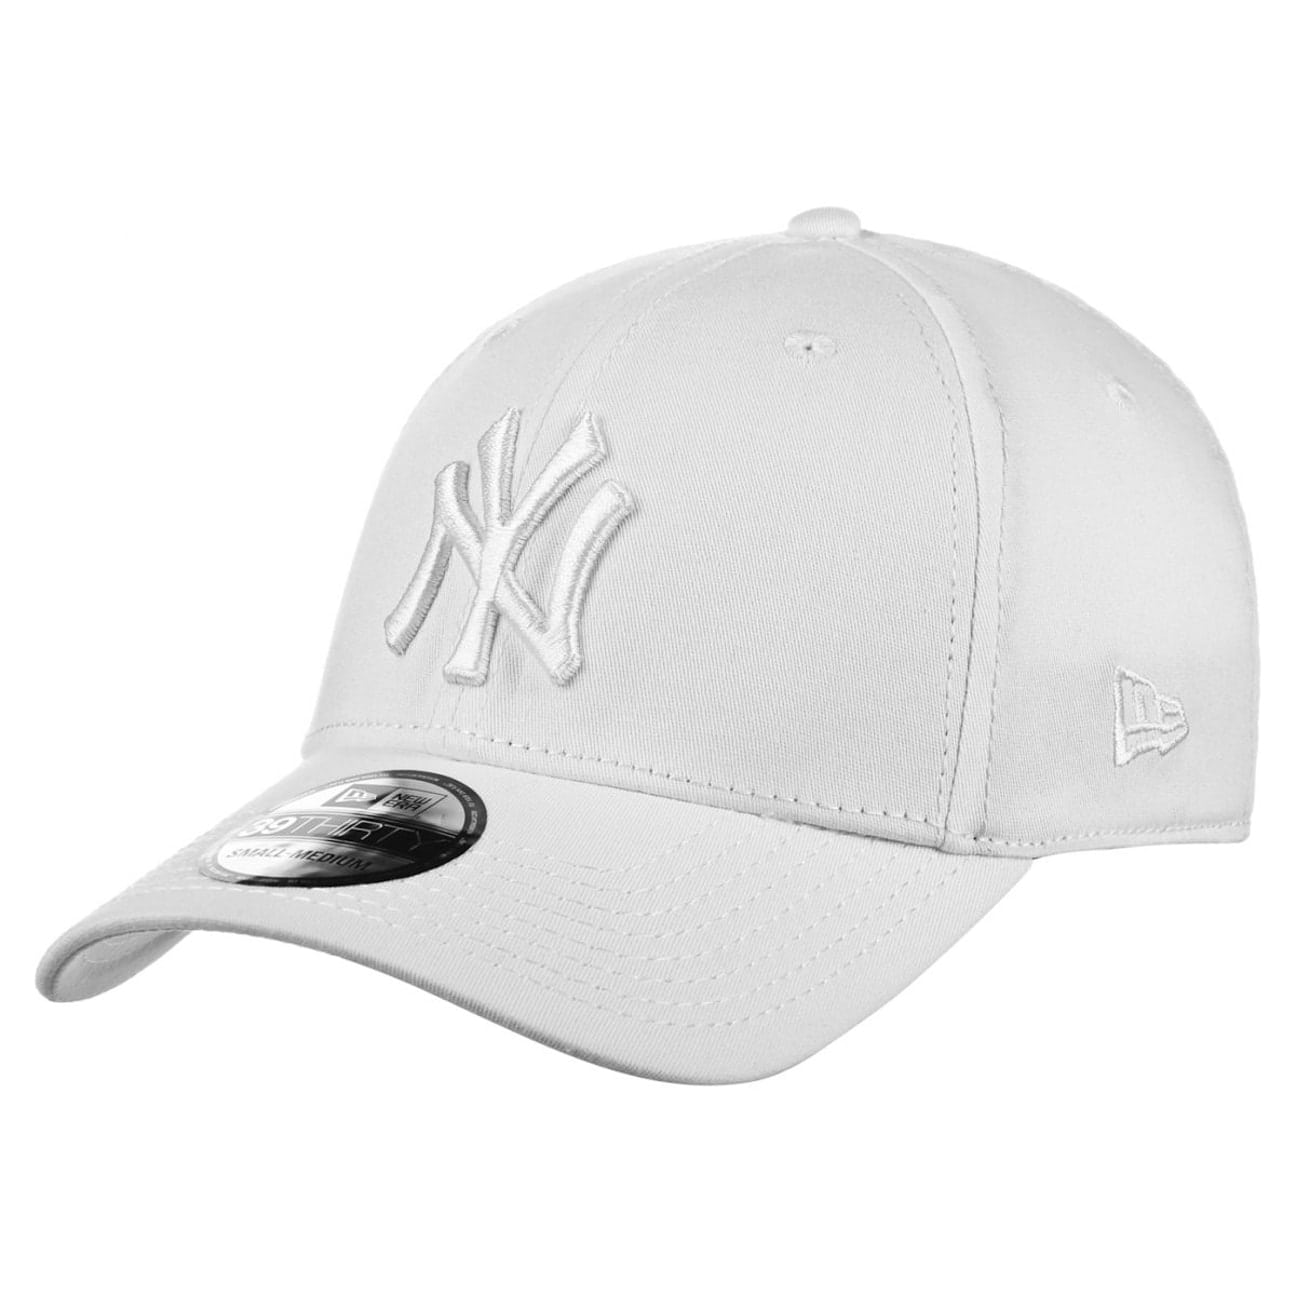 ... 39Thirty League NY Basic Cap by New Era - weiß 1 ... 2d24a68baf